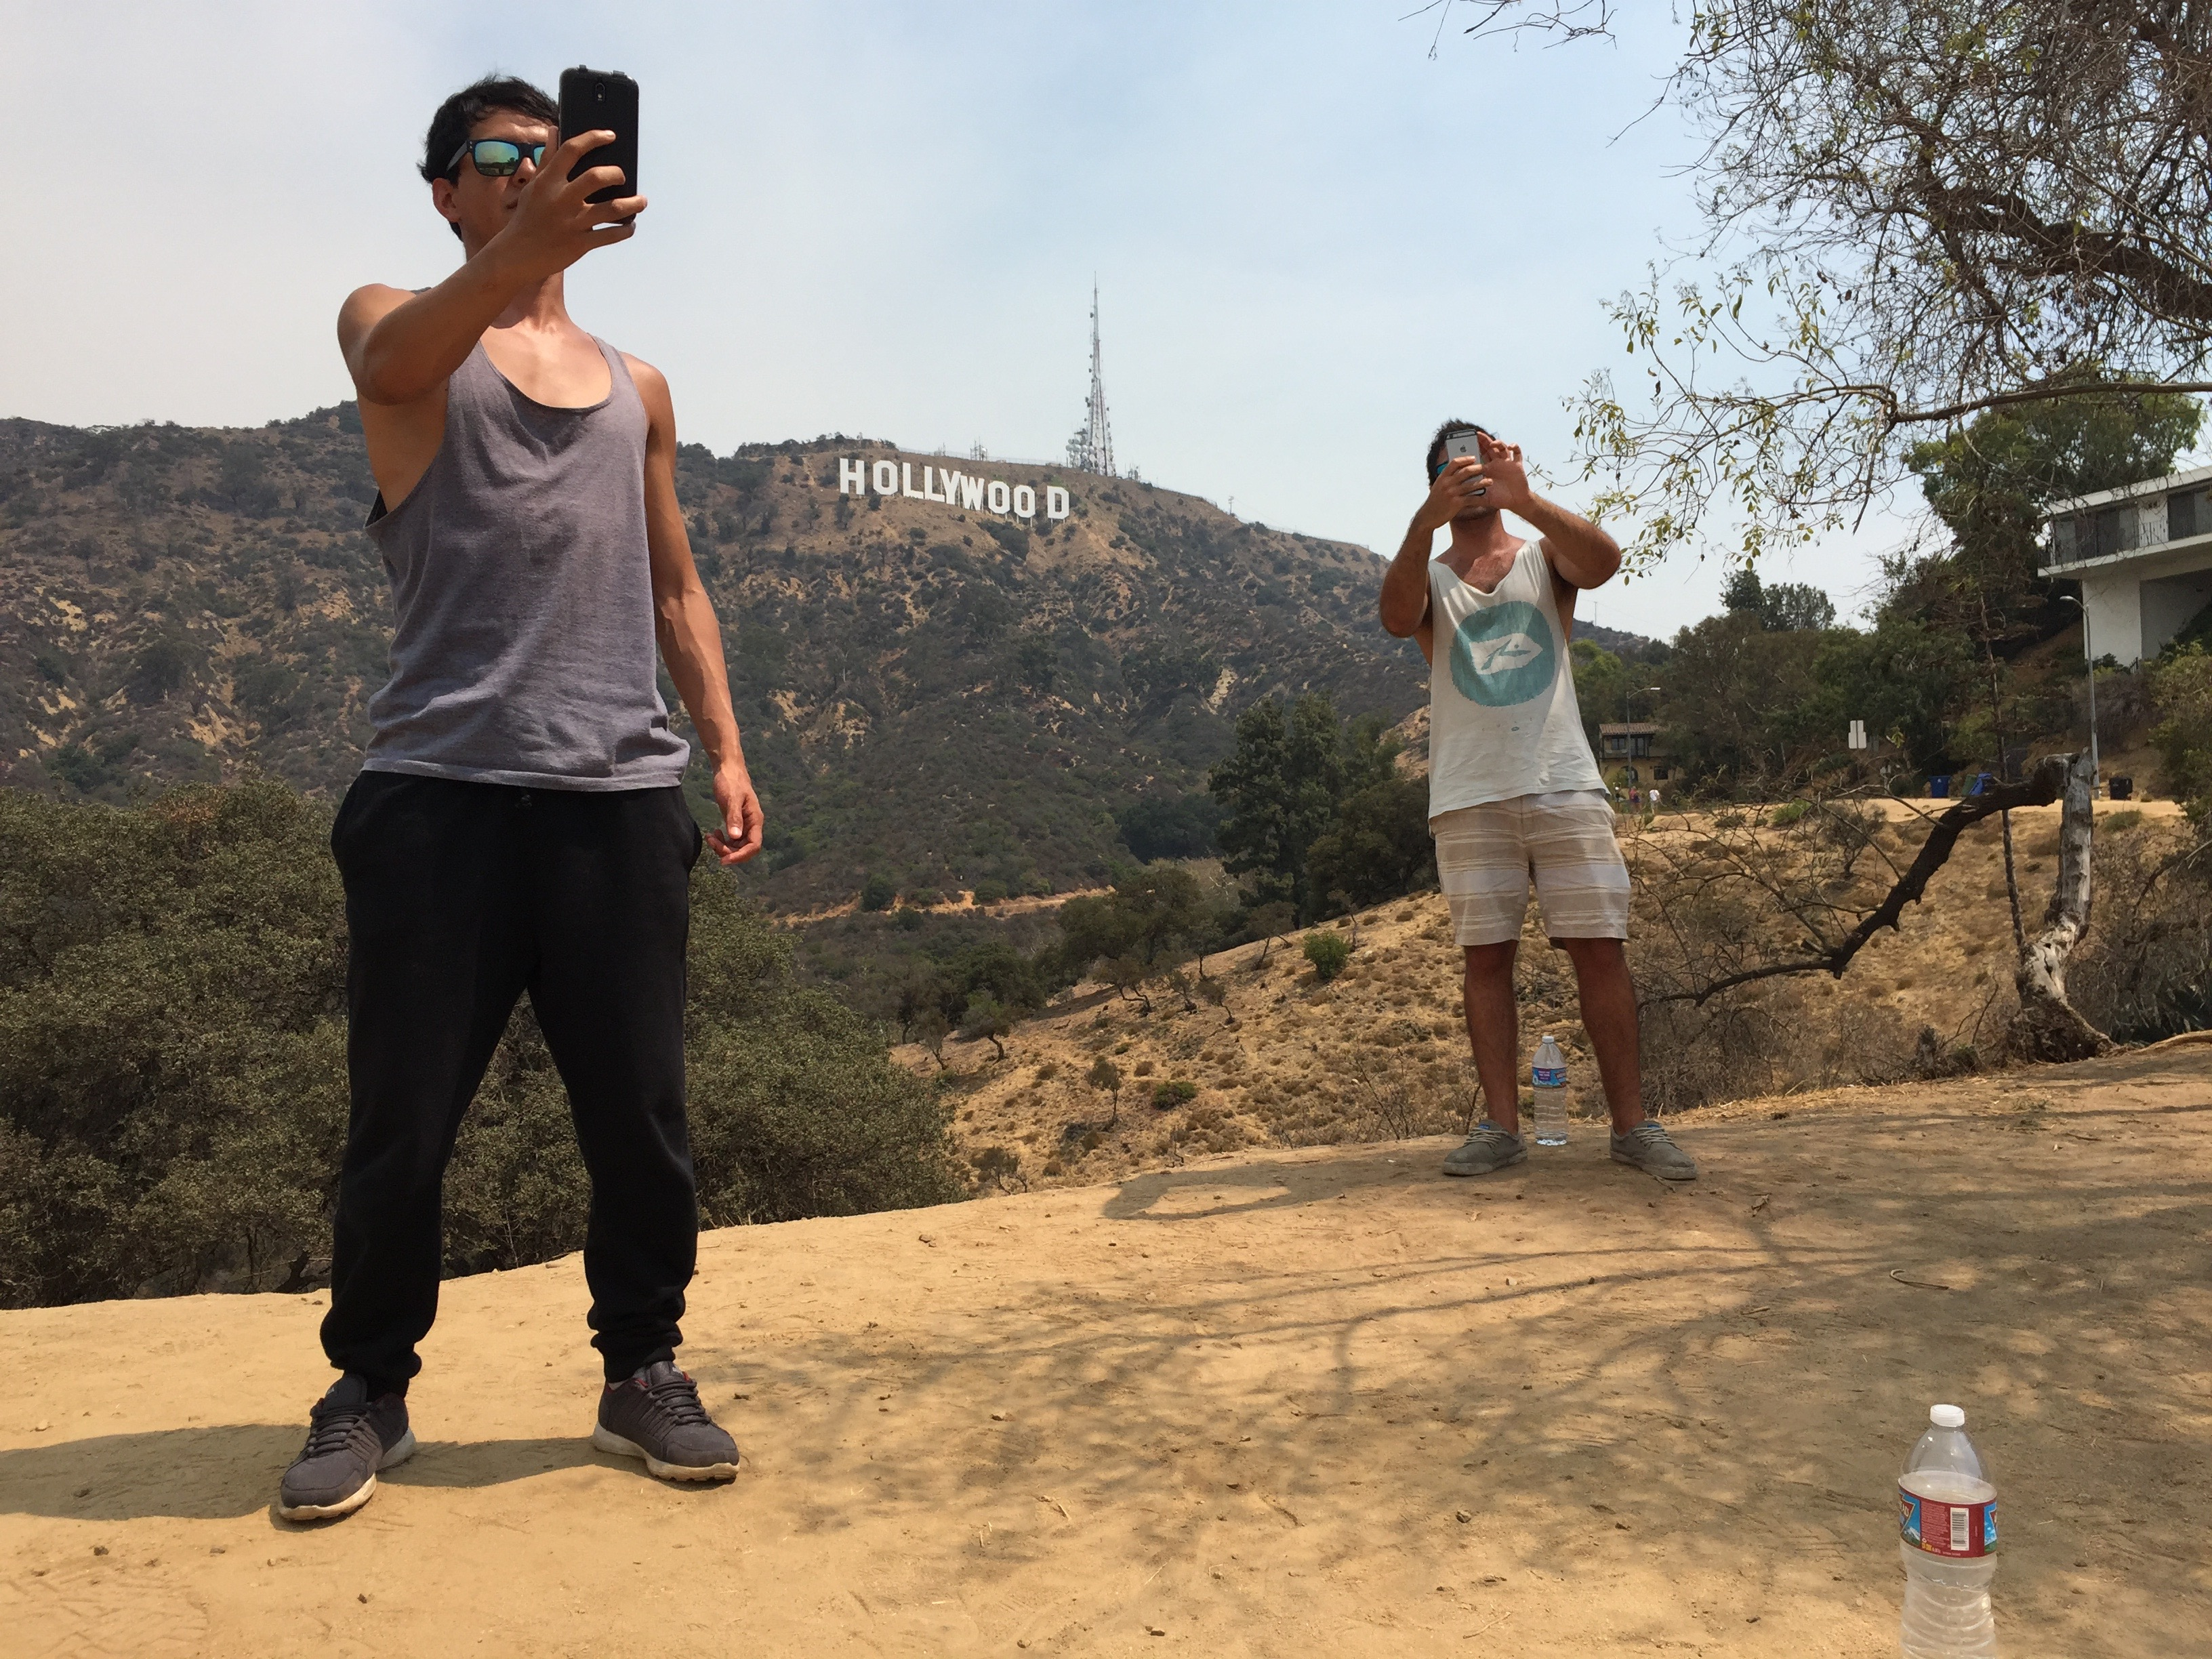 Chileans take selfies in front of the Hollywood sign.